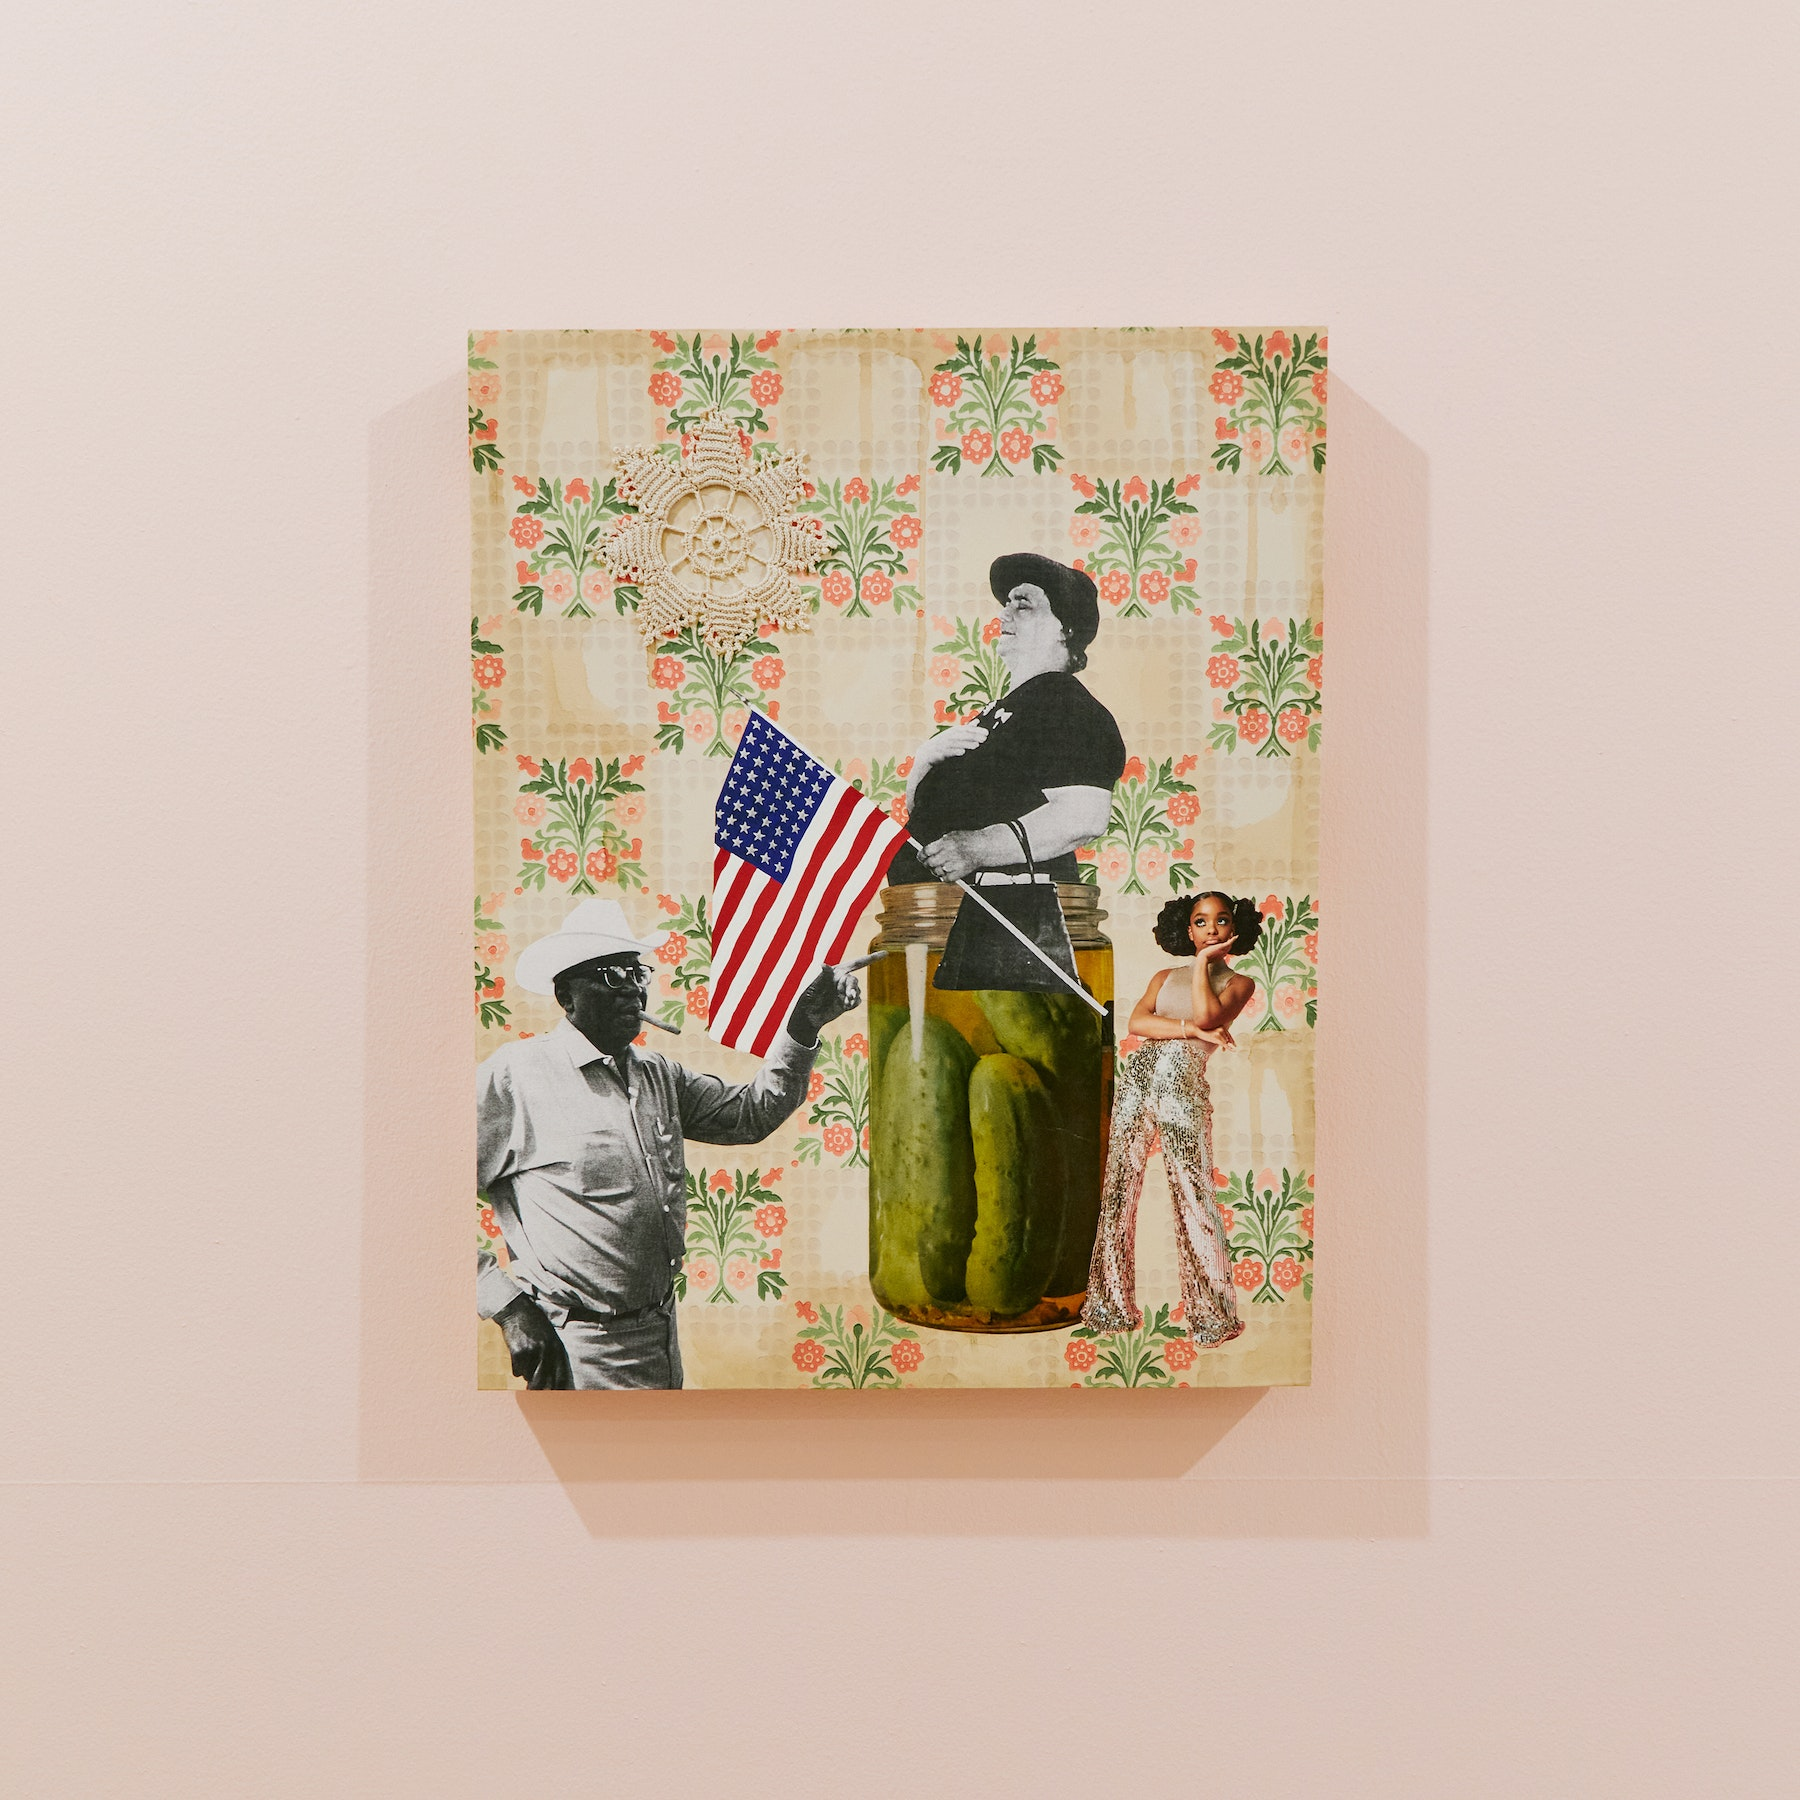 """Genevieve Gaignard """"America — In a Pickle,"""" 2020 Mixed media on panel 16 x 20 x 1.5"""" [HxWxD] (40.64 x 50.8 x 3.81 cm) Inventory #GEN326 Courtesy of the artist and Vielmetter Los Angeles Photo credit: Megan Haley"""